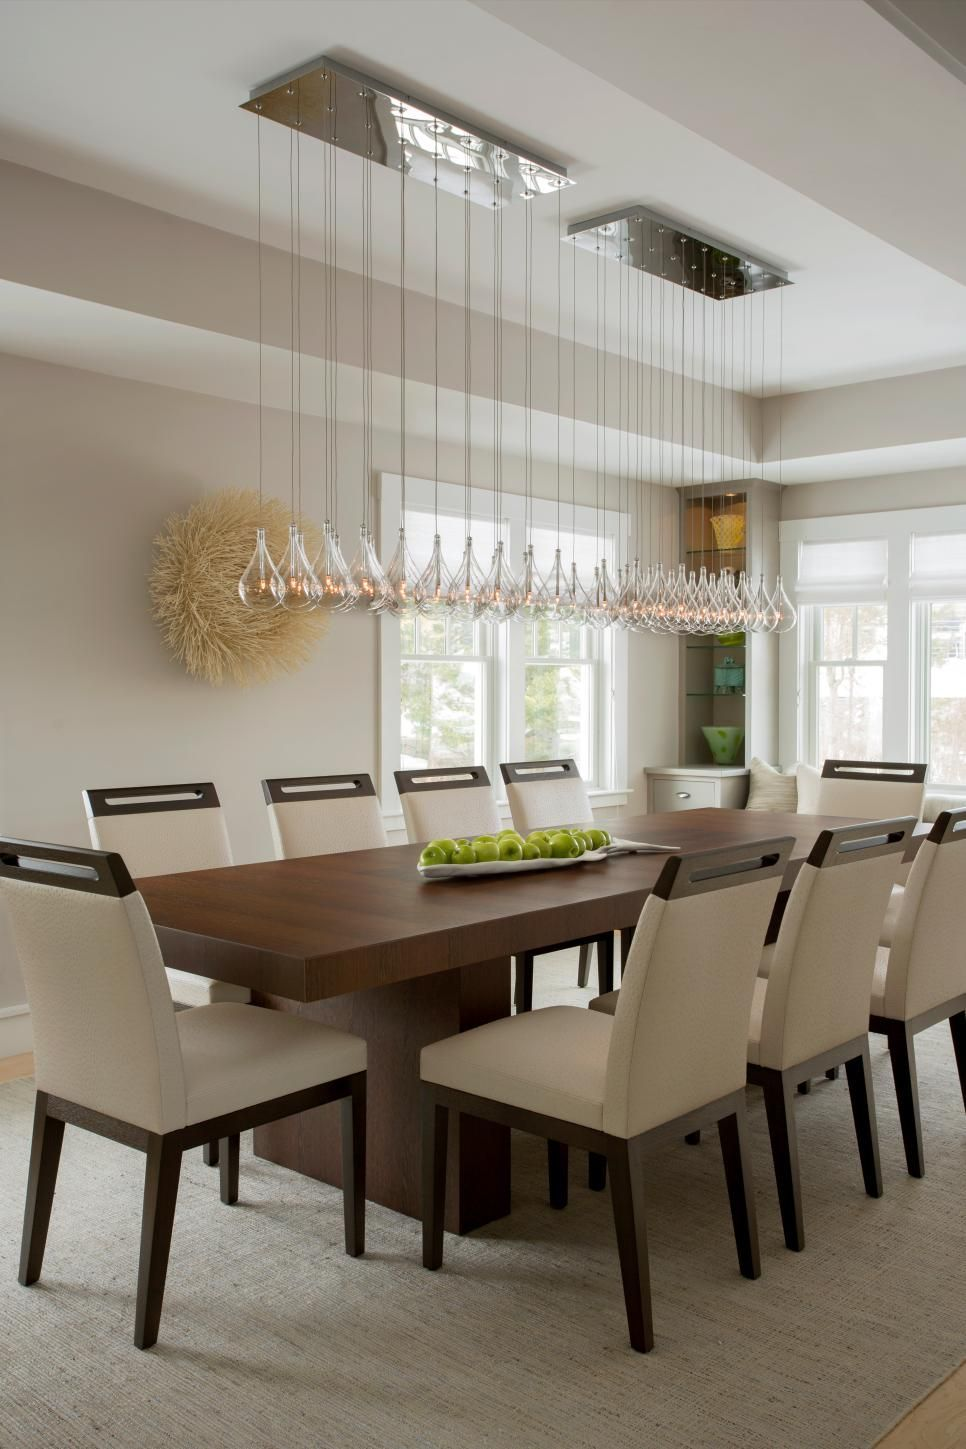 28 Simple Dining Room Ideas For A Stunning Inspiration: 29 Beautiful Dining Room Paint Colors Ideas And